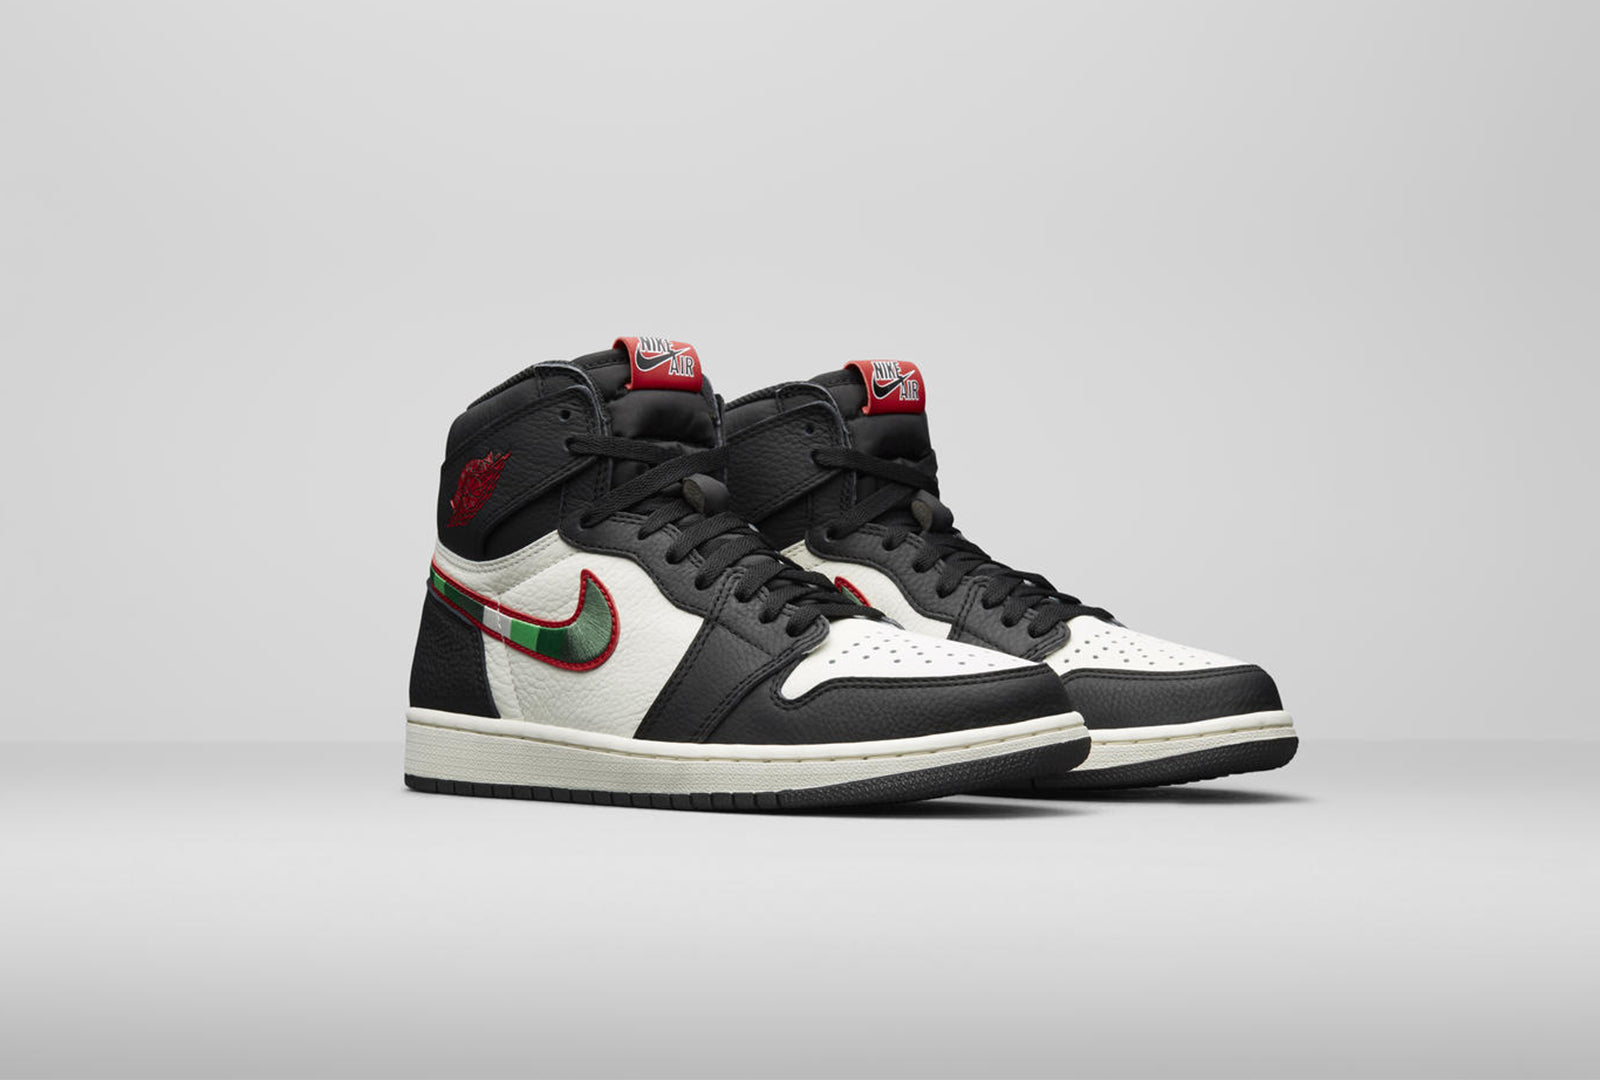 df99123eb0f8 Nike Air Jordan 1 Retro High OG